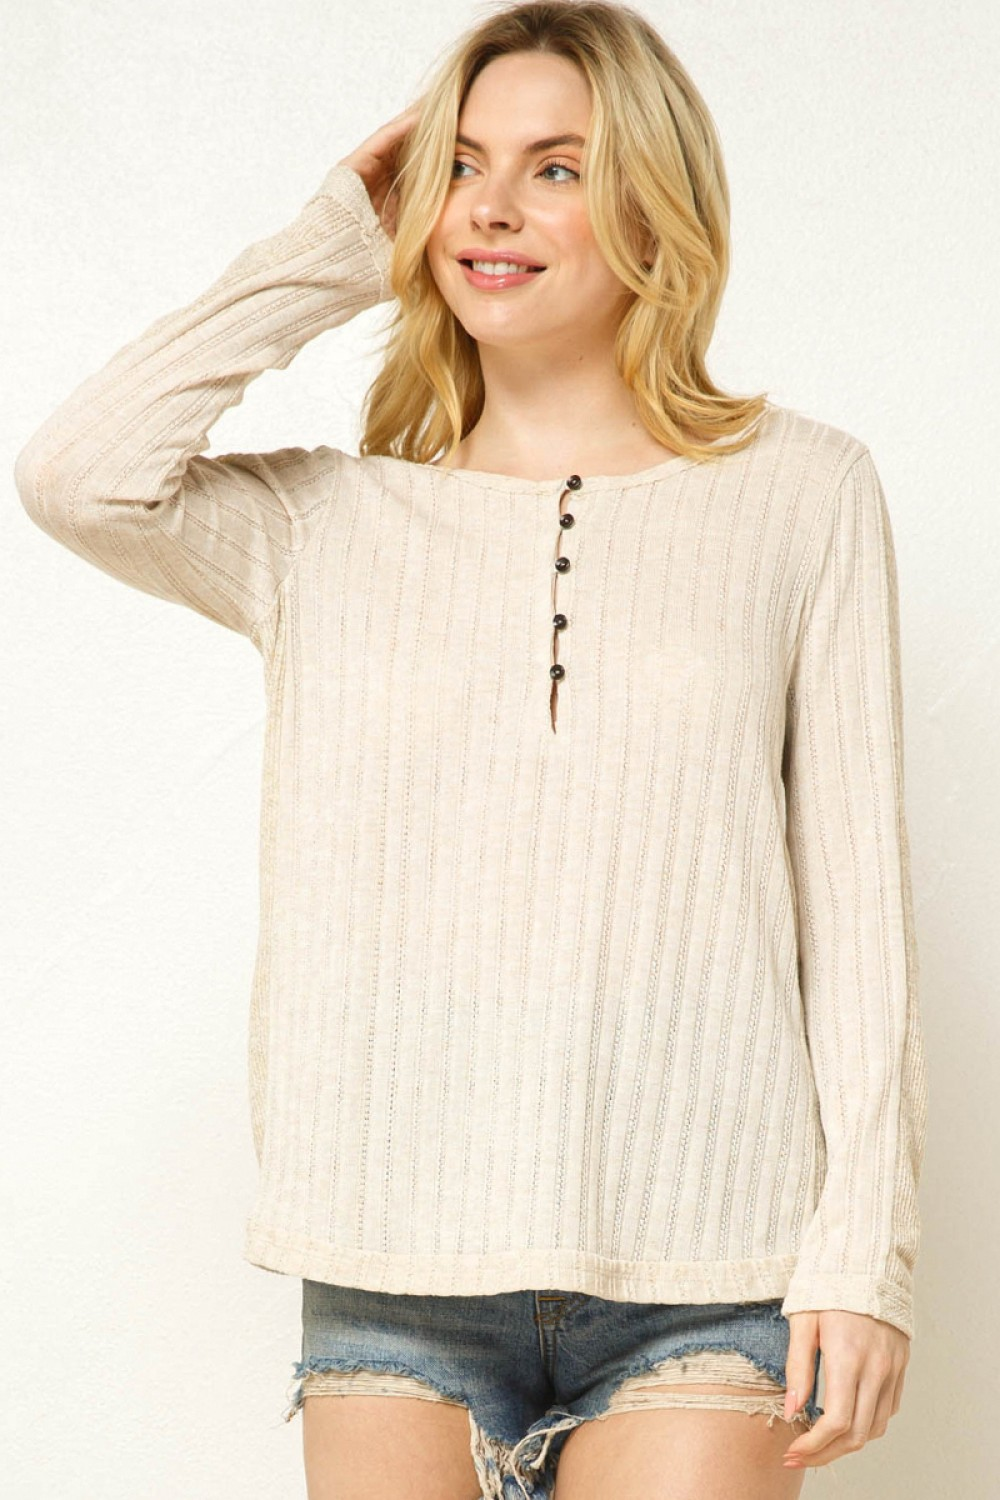 TT3327NSB<br/>Textured Solid Button-up Top